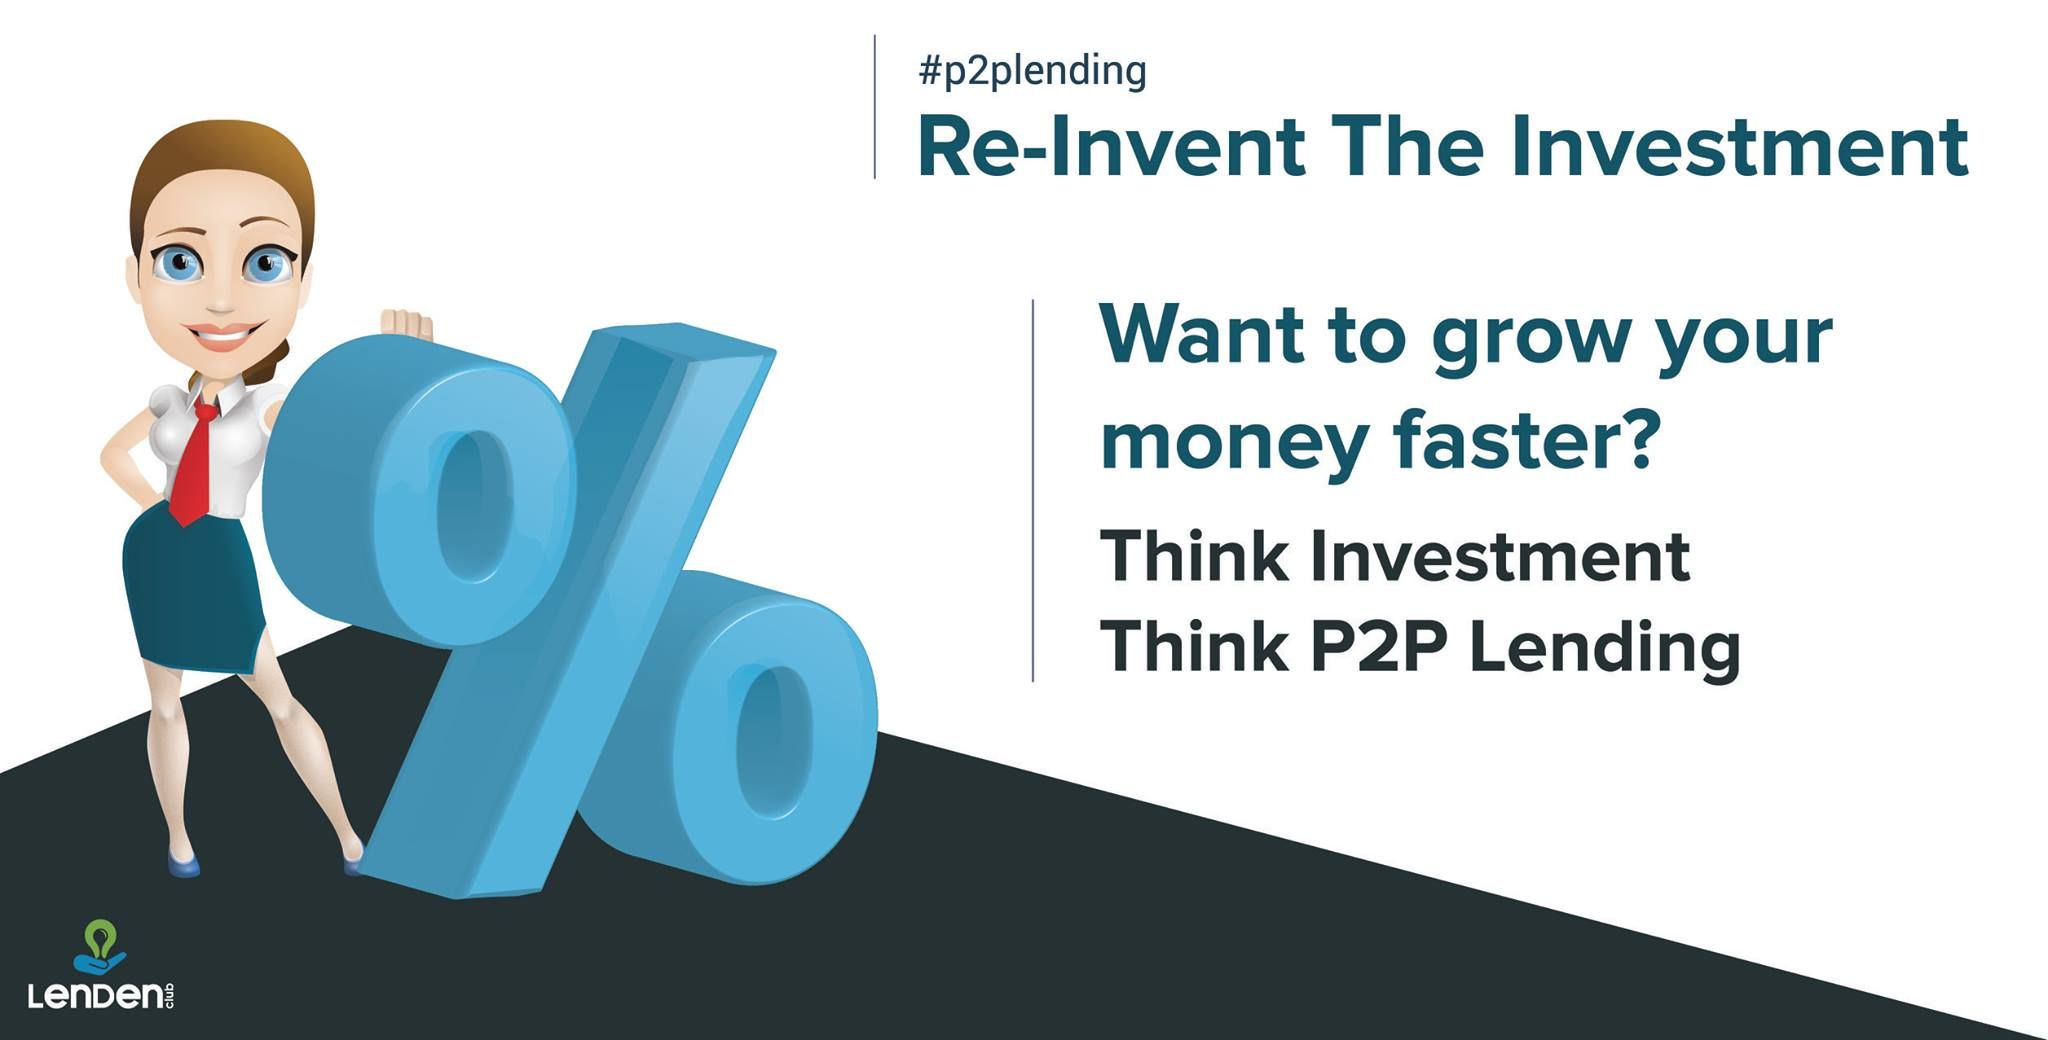 Think Investment Think P2p Lending To Grow Your Money Faster P2p Lending Becomes More Easier With The Most Interactive And P2p Lending Investing Money Lender